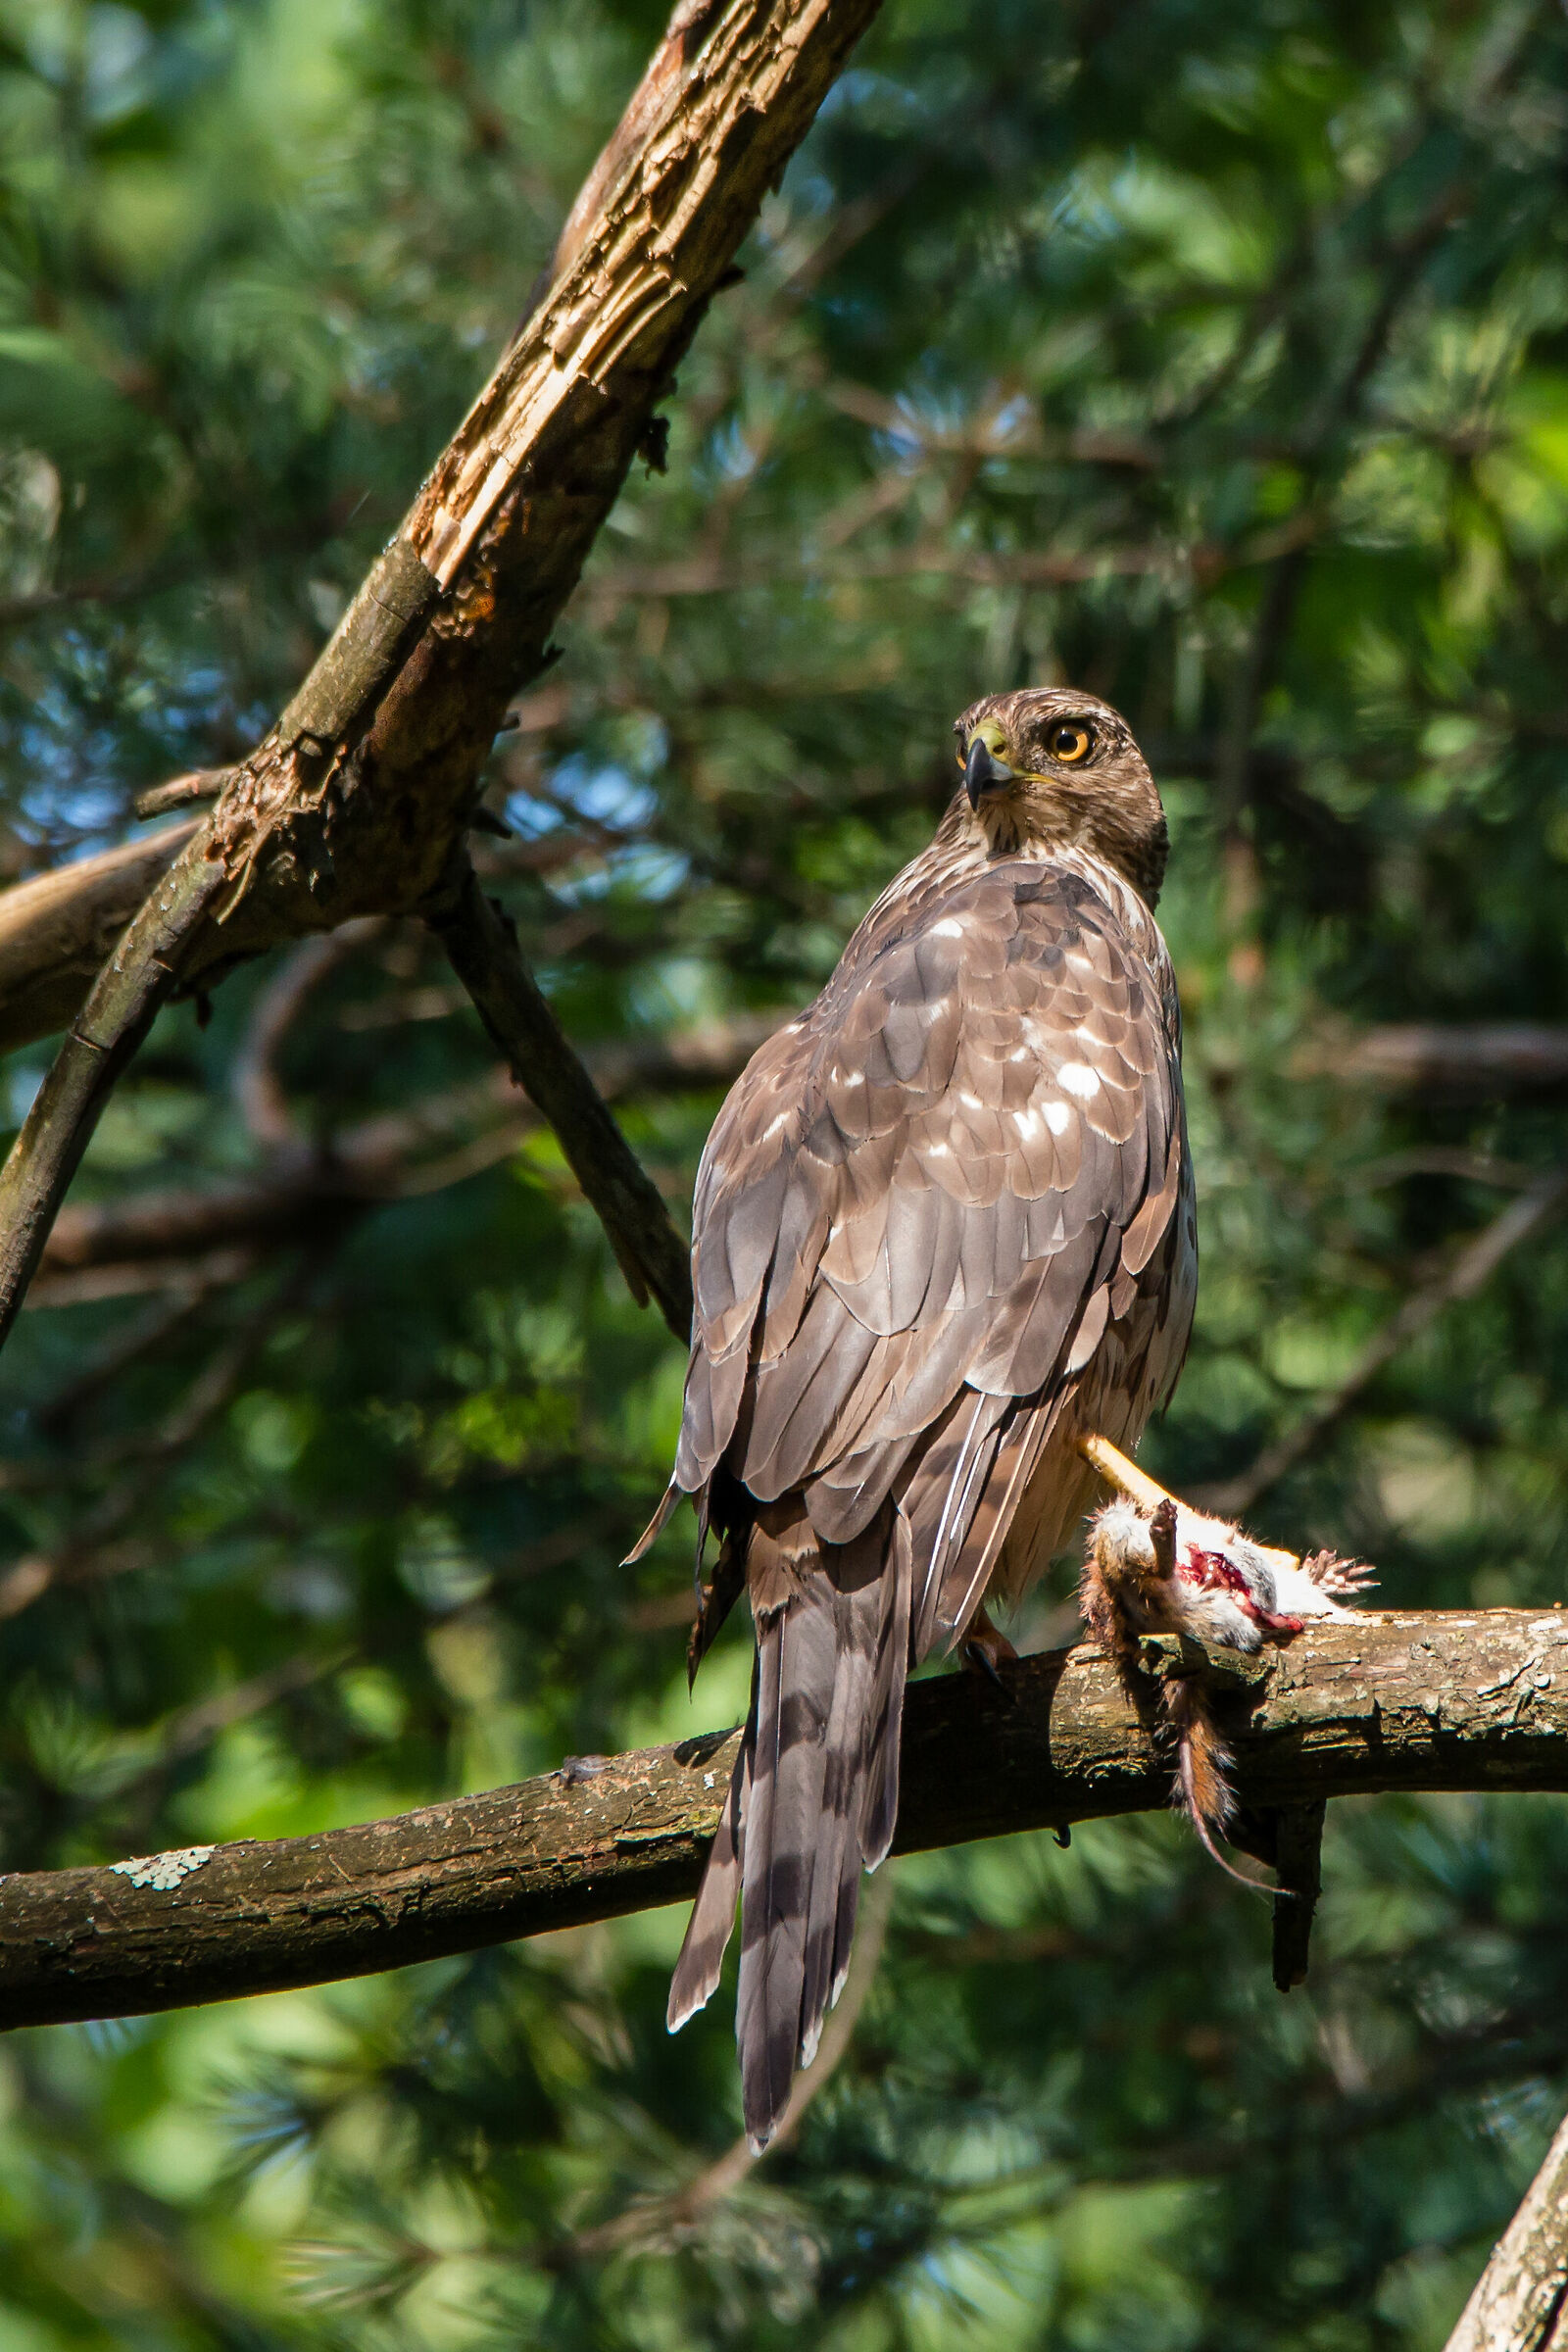 Adult Cooper Hawk with Prey (Accipiter co-workers)...